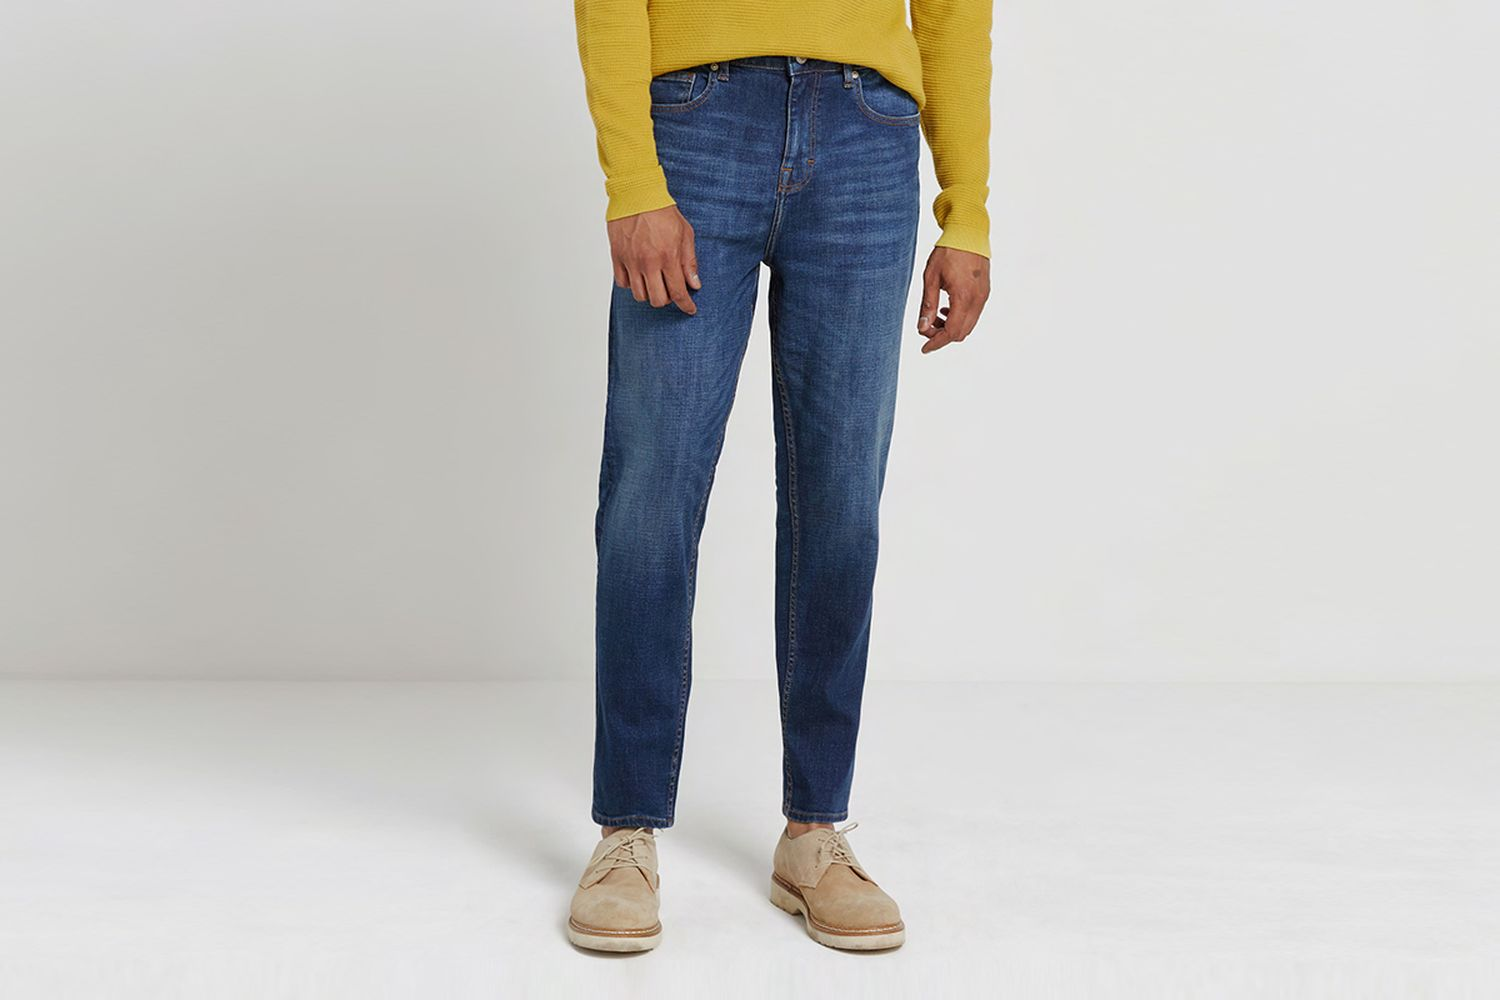 The Iggy Tapered Fit Jean